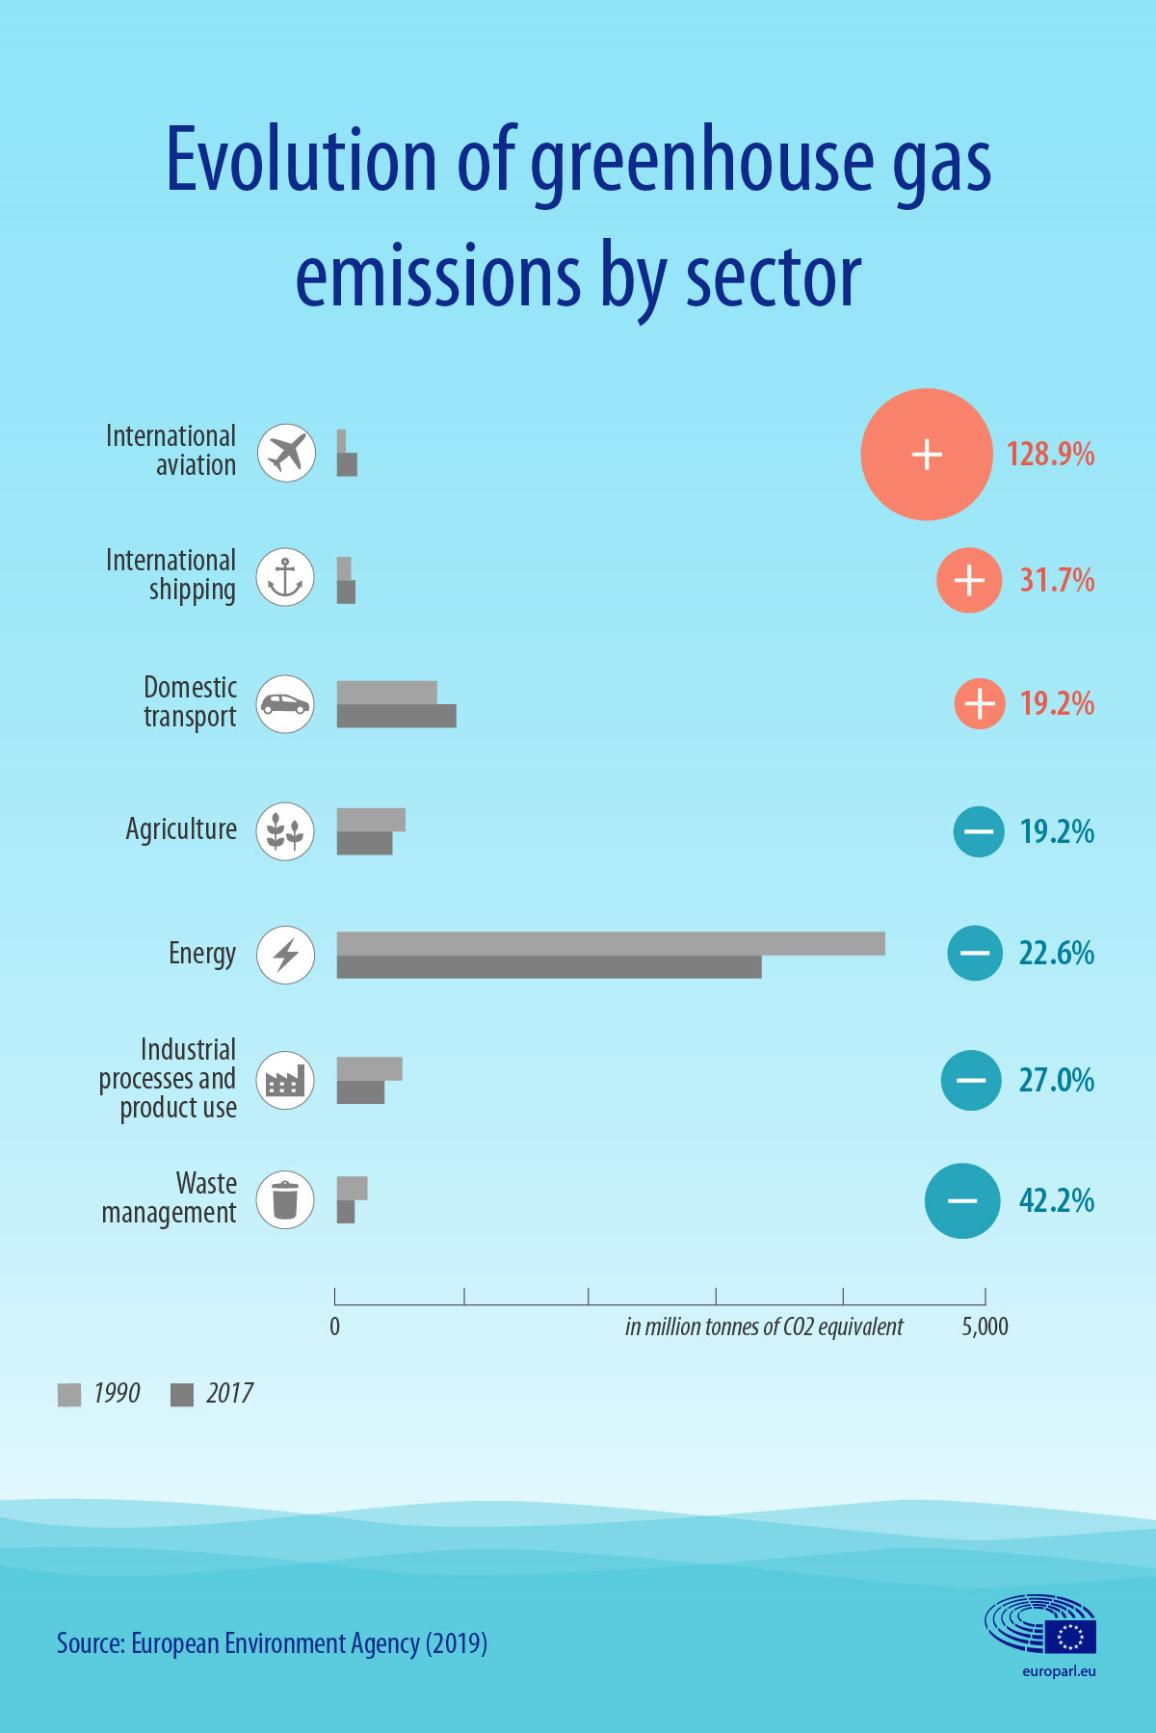 Infographic on the evolution of greenhouse gas emissions by sector, including aviation and shipping